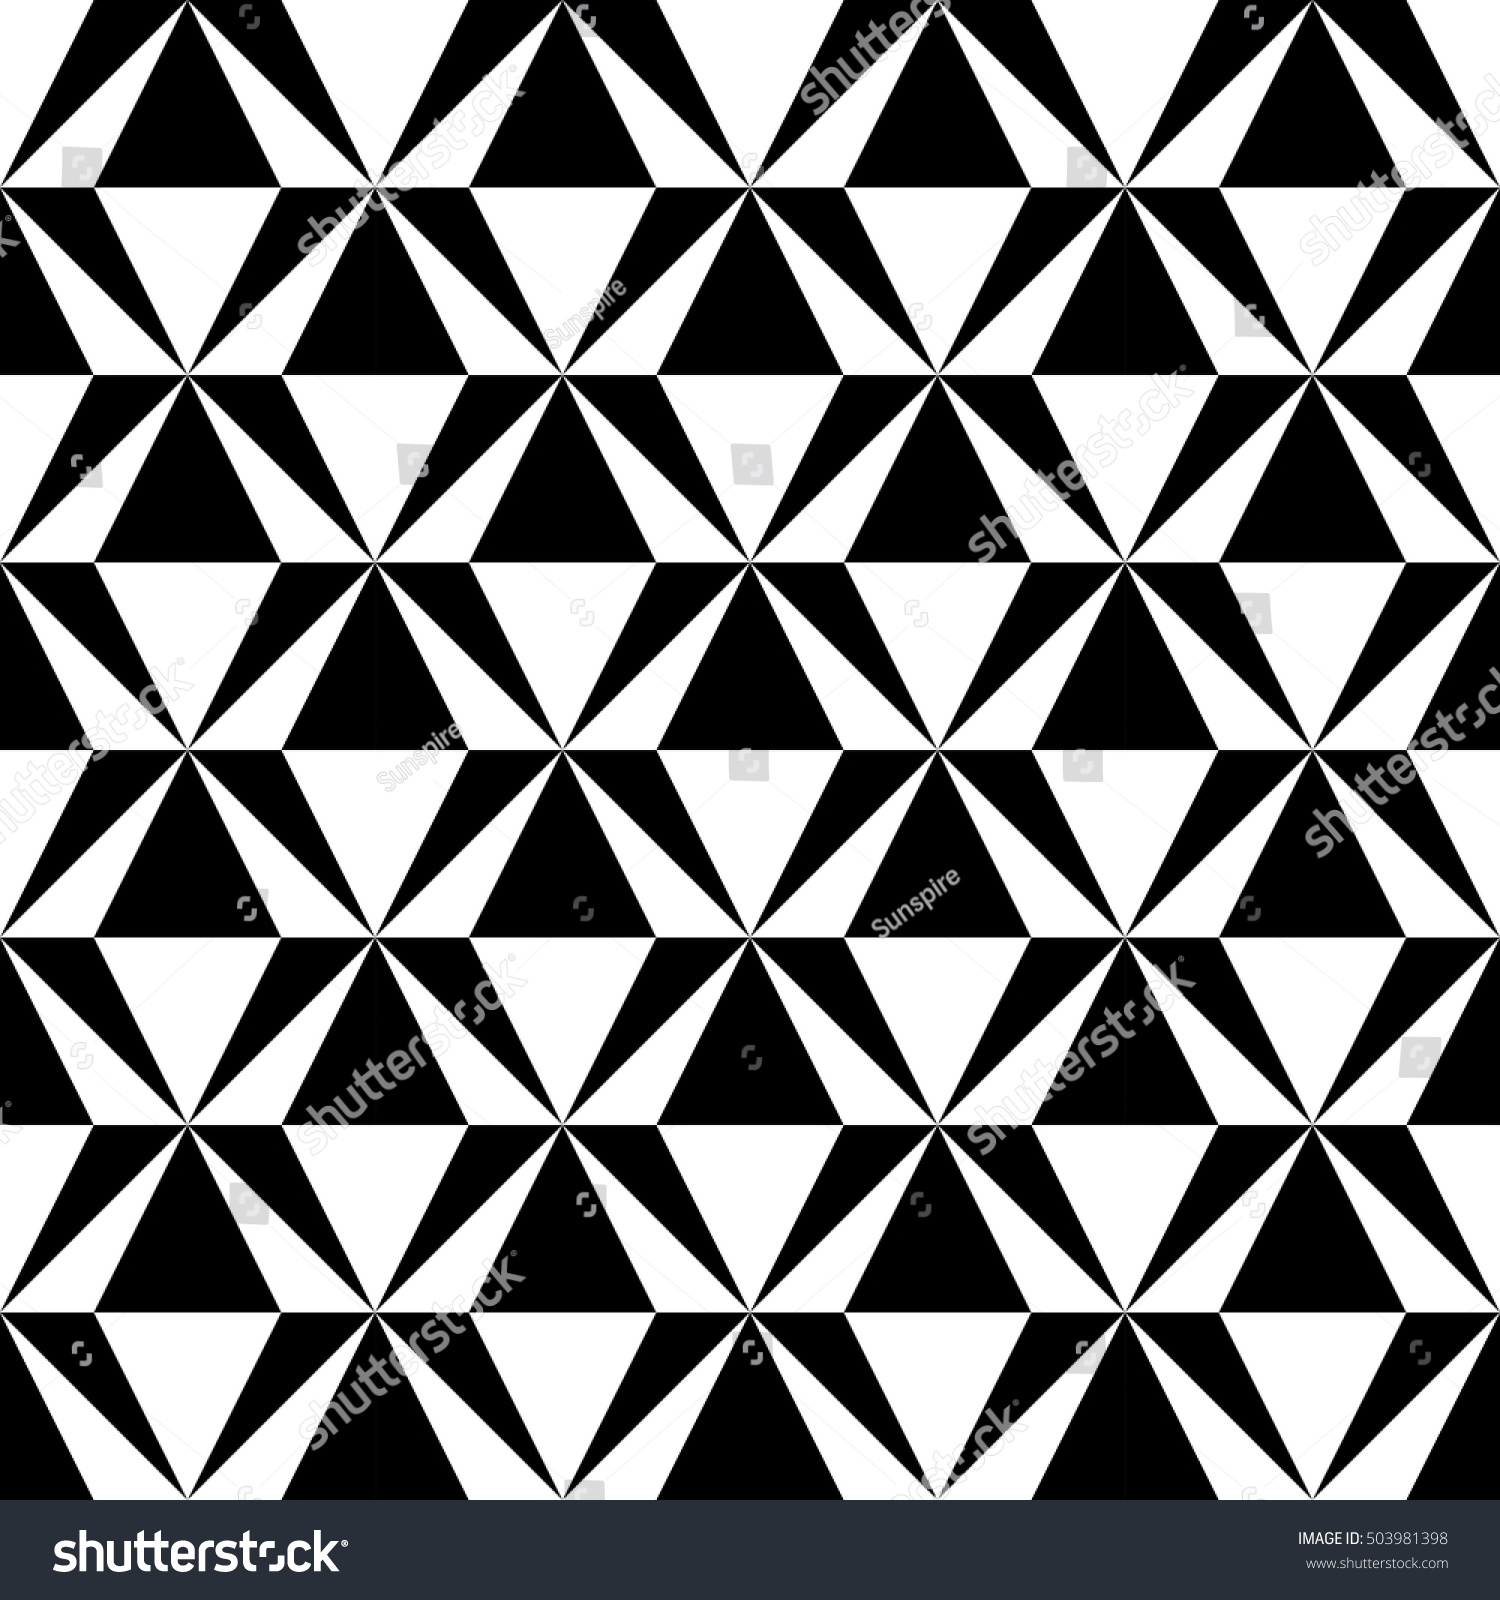 White bed sheet texture seamless - Vector Modern Abstract Geometry Pattern Black And White Seamless Geometric Background Subtle Pillow And